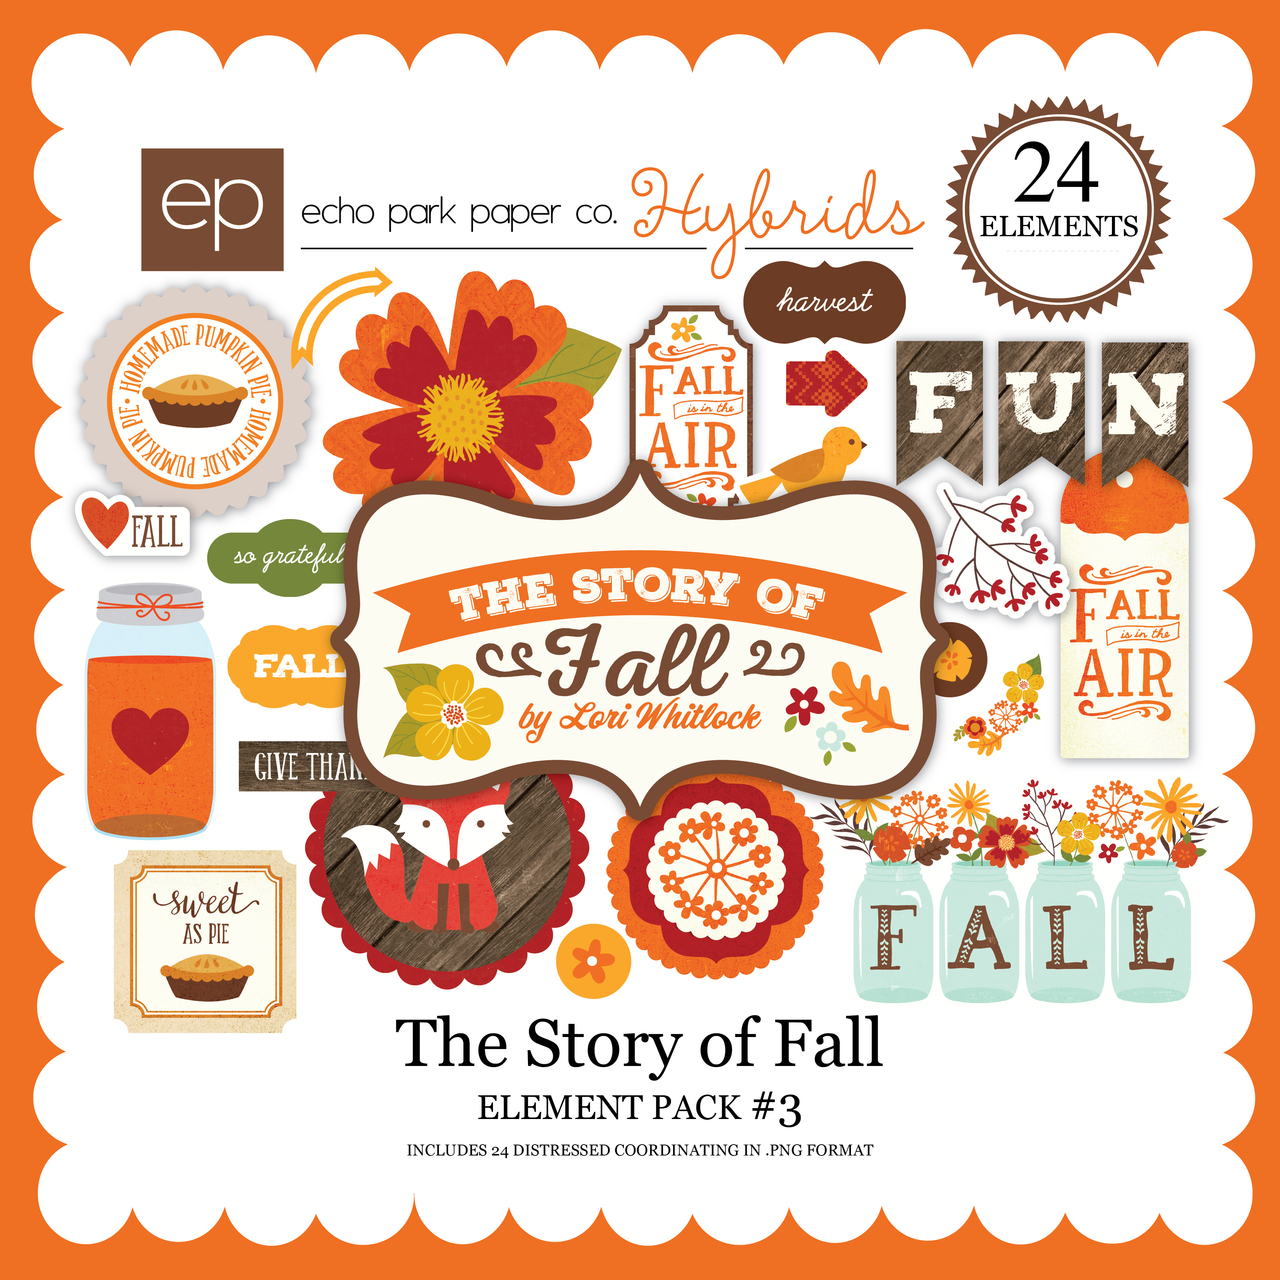 The Story of Fall Element Pack 3